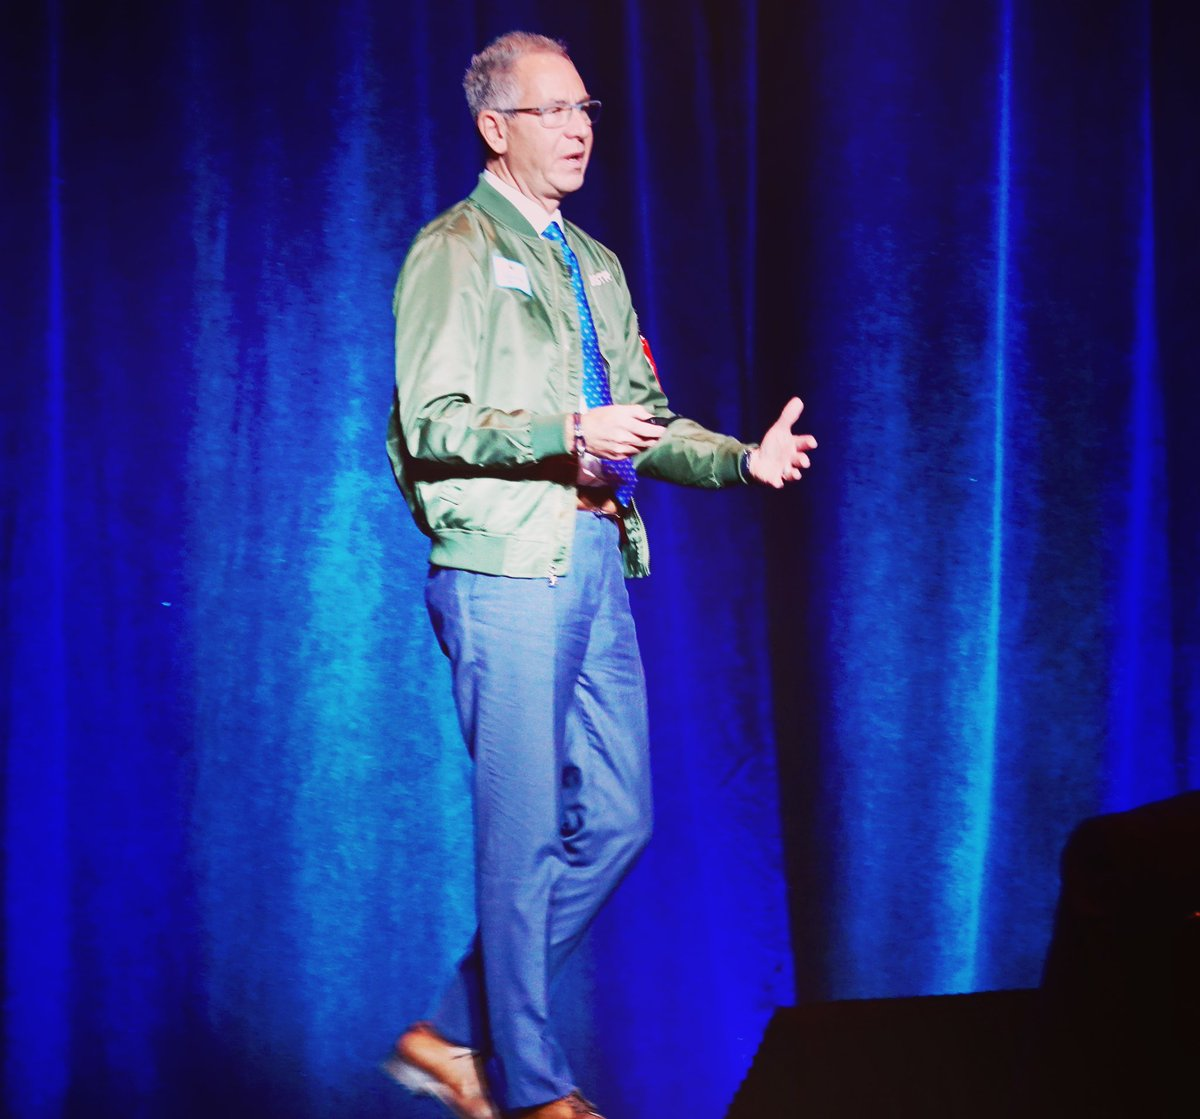 When addressing the importance of #ethics and #integrity at a product launch 🚀 one needs to have a launch jacket! Thank you to @carrier for the honor of sharing my experience with the @edwards_safety team! https://t.co/Km6aRmpA8C